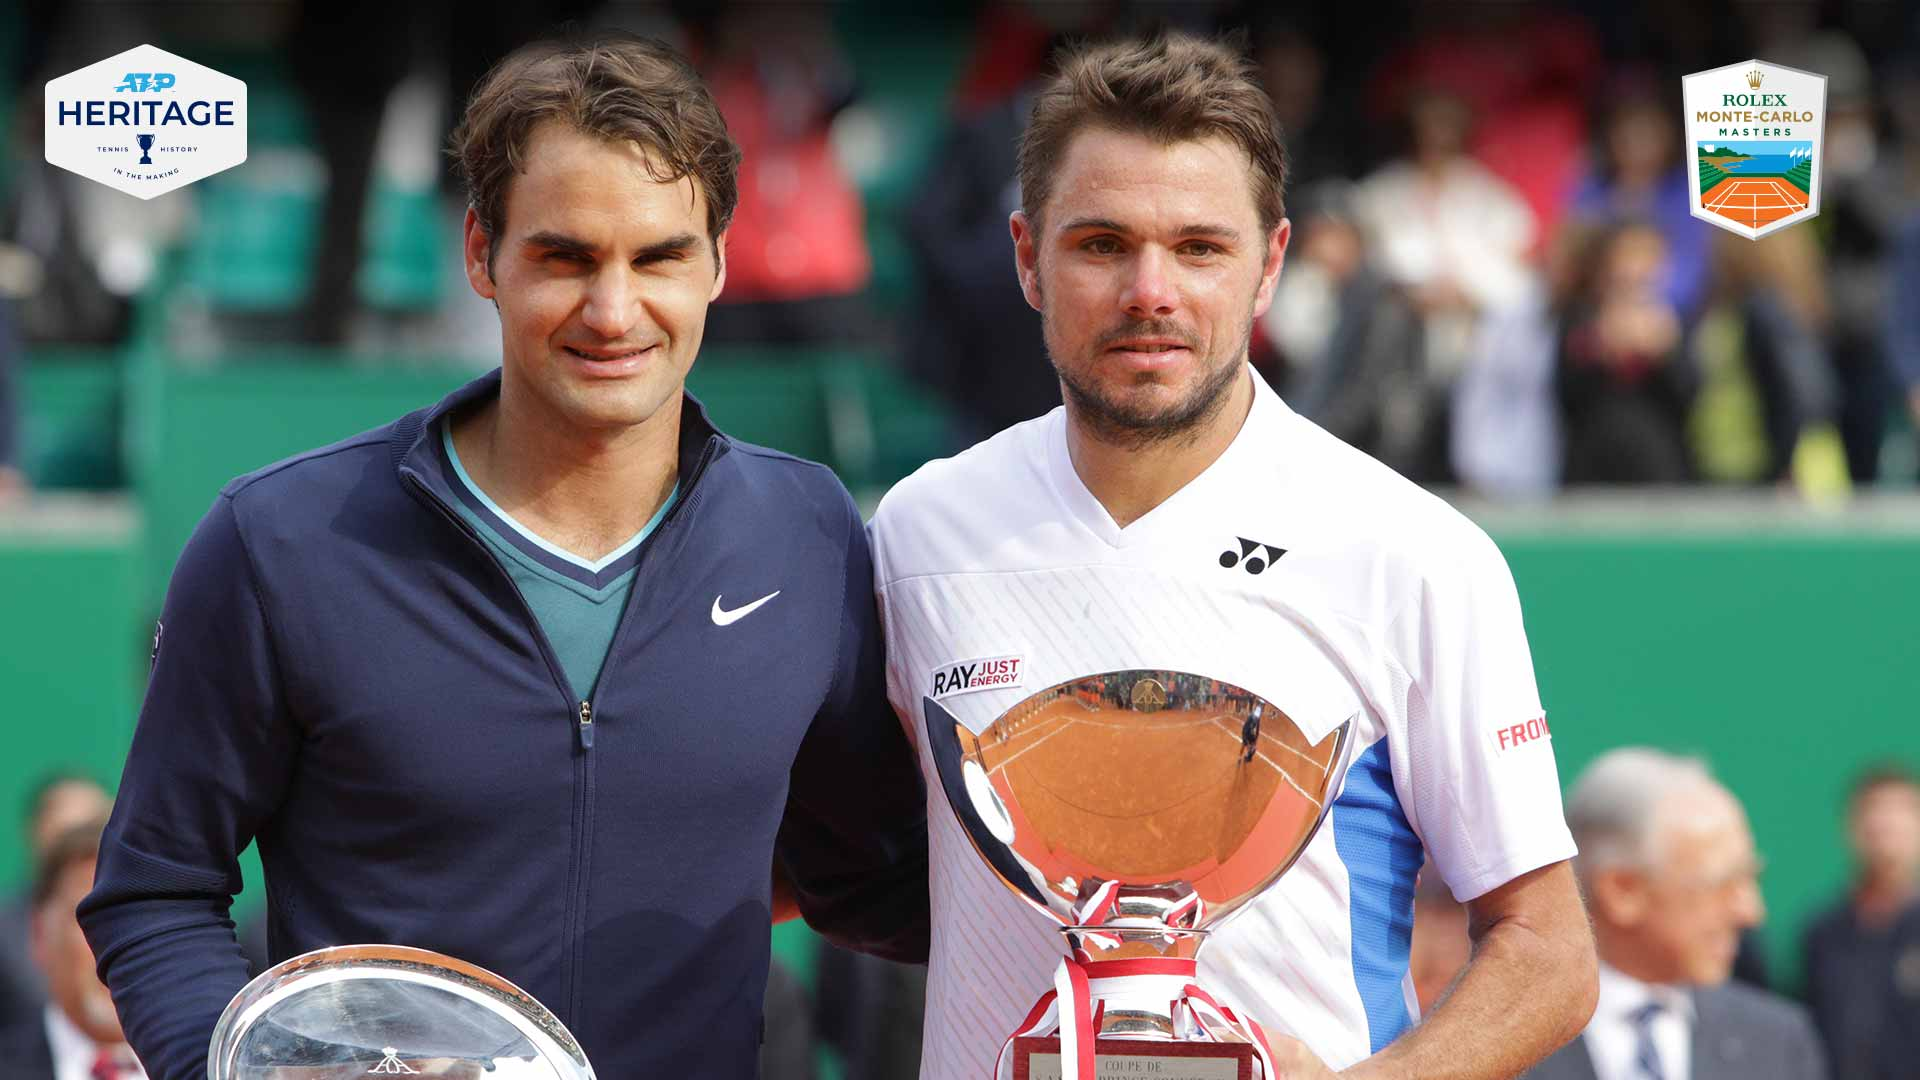 Roger Federer and Stan Wawrinka contested the first all-Swiss final on the ATP Tour in more than 14 years at the 2014 Rolex Monte-Carlo Masters.